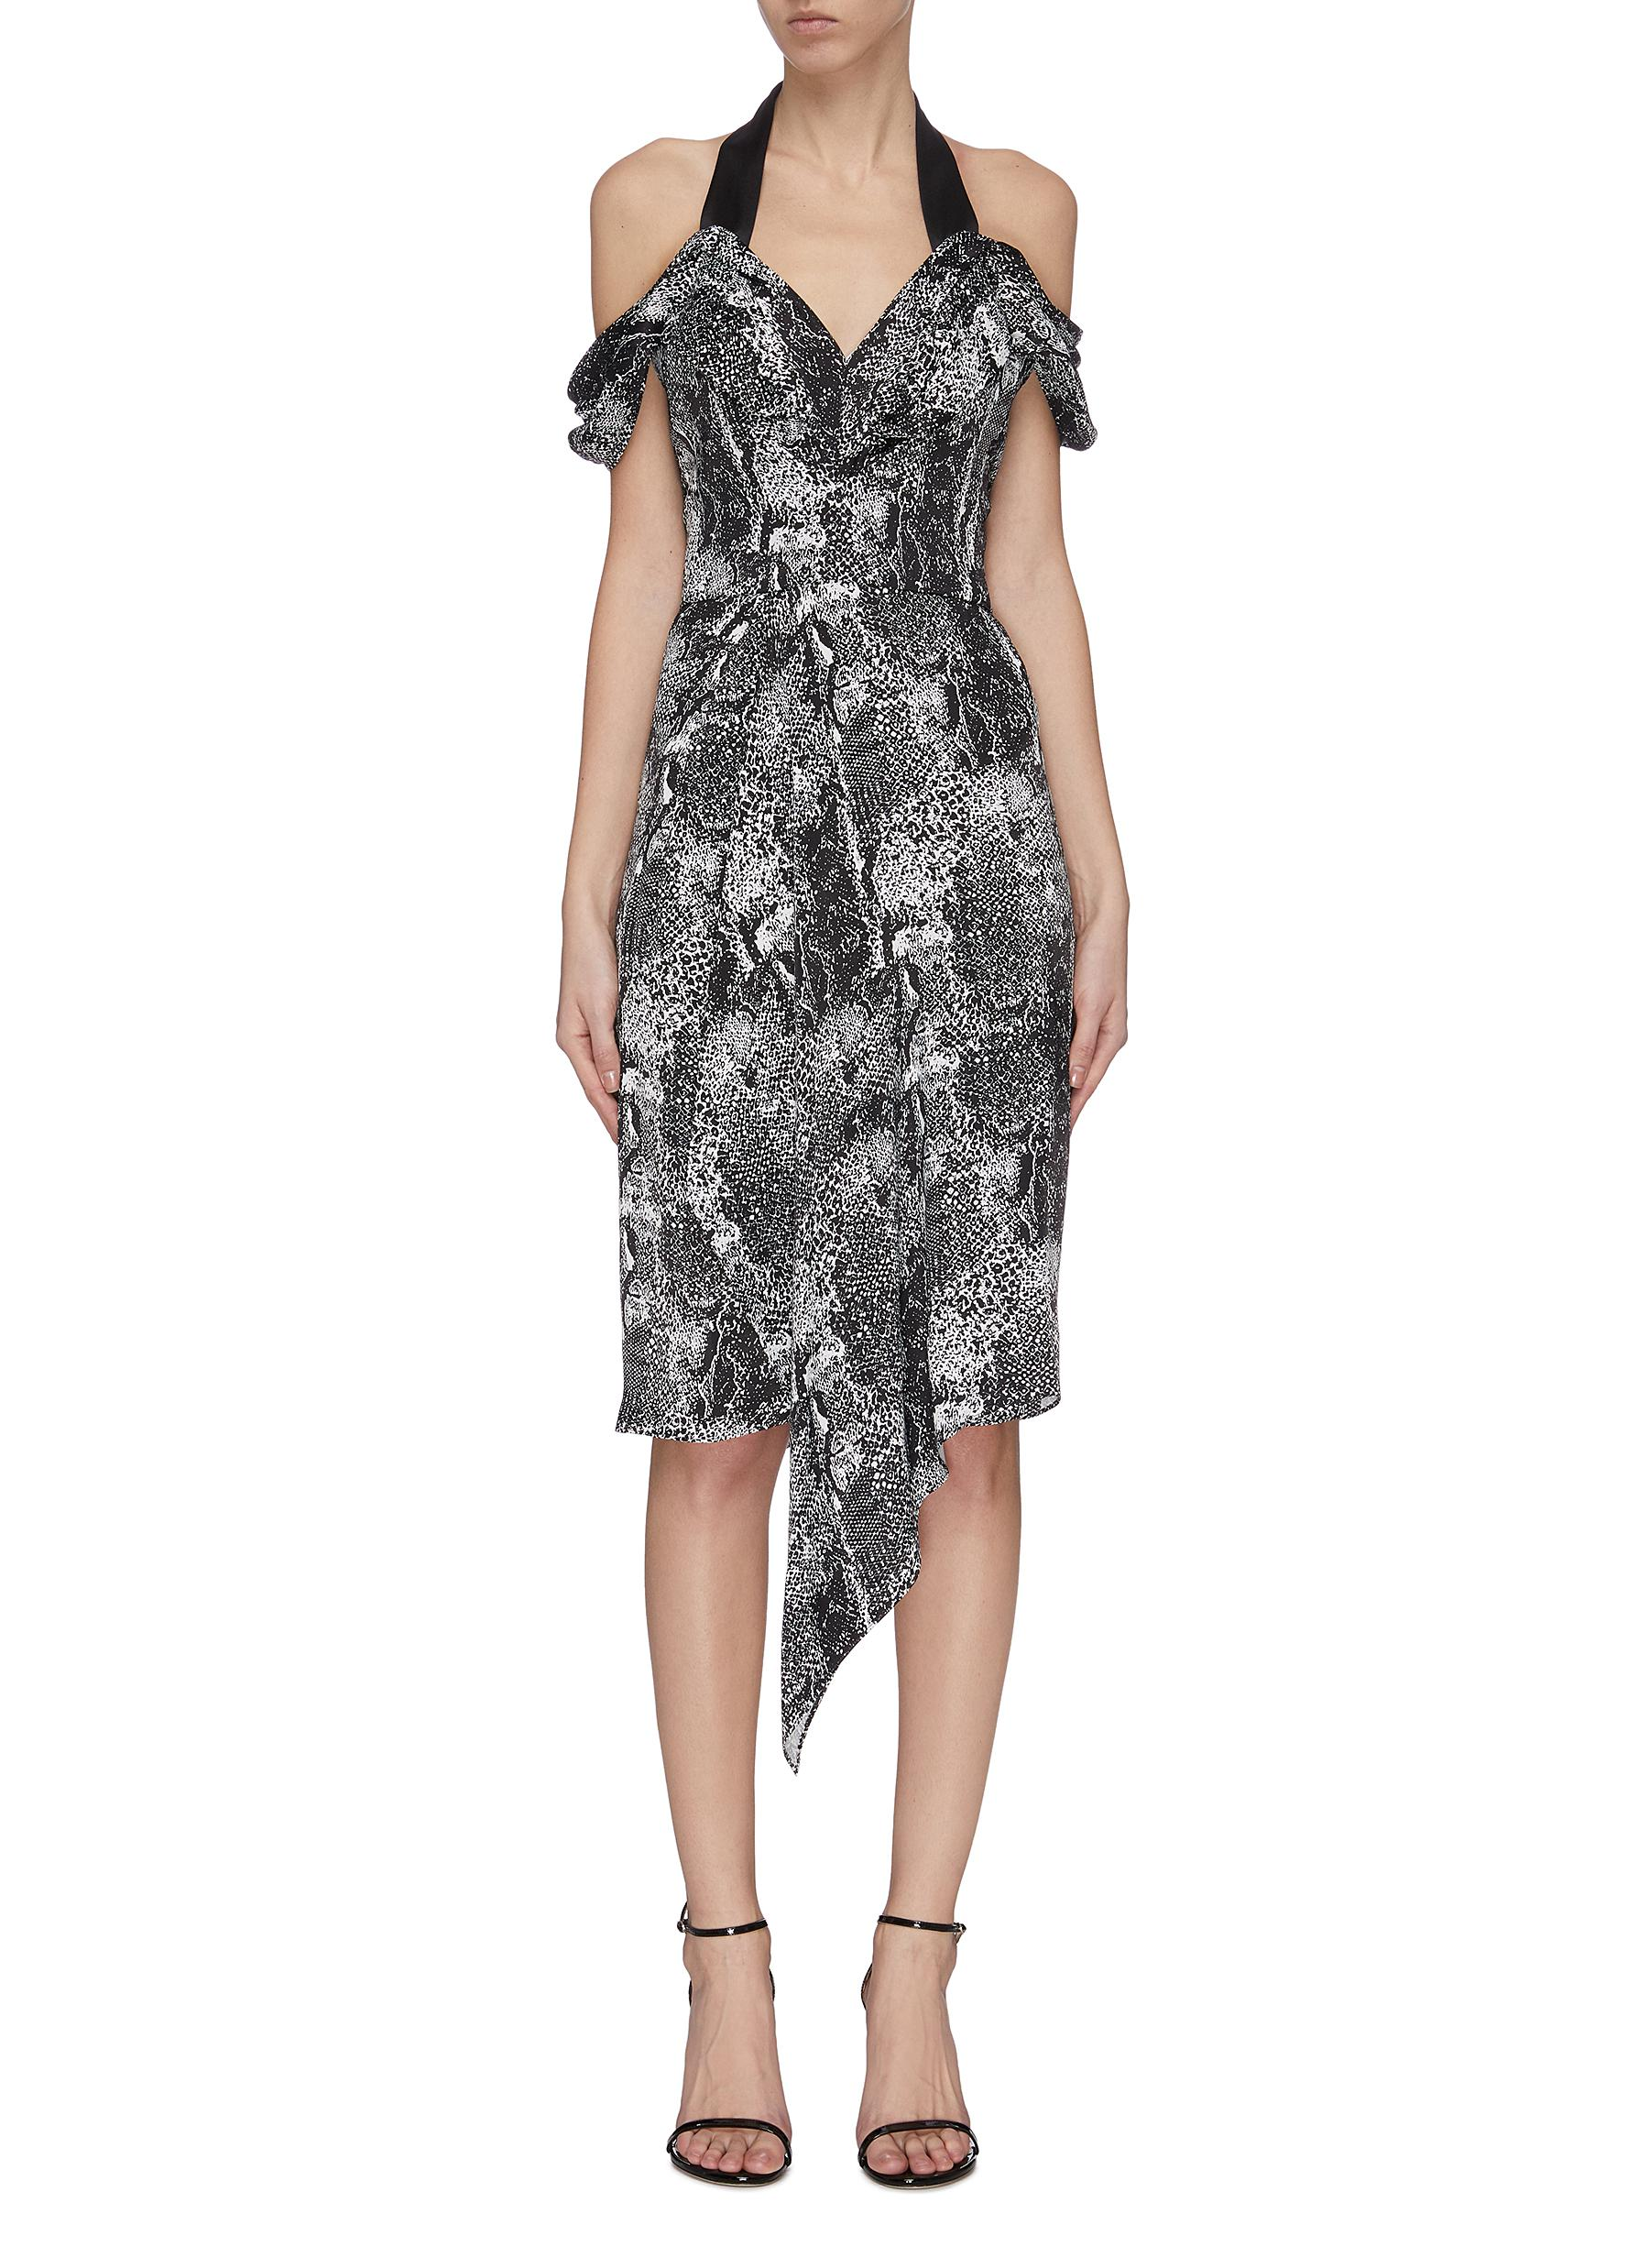 Buy Maticevski Dresses 'Chrysalis' graphic print V-neck dress